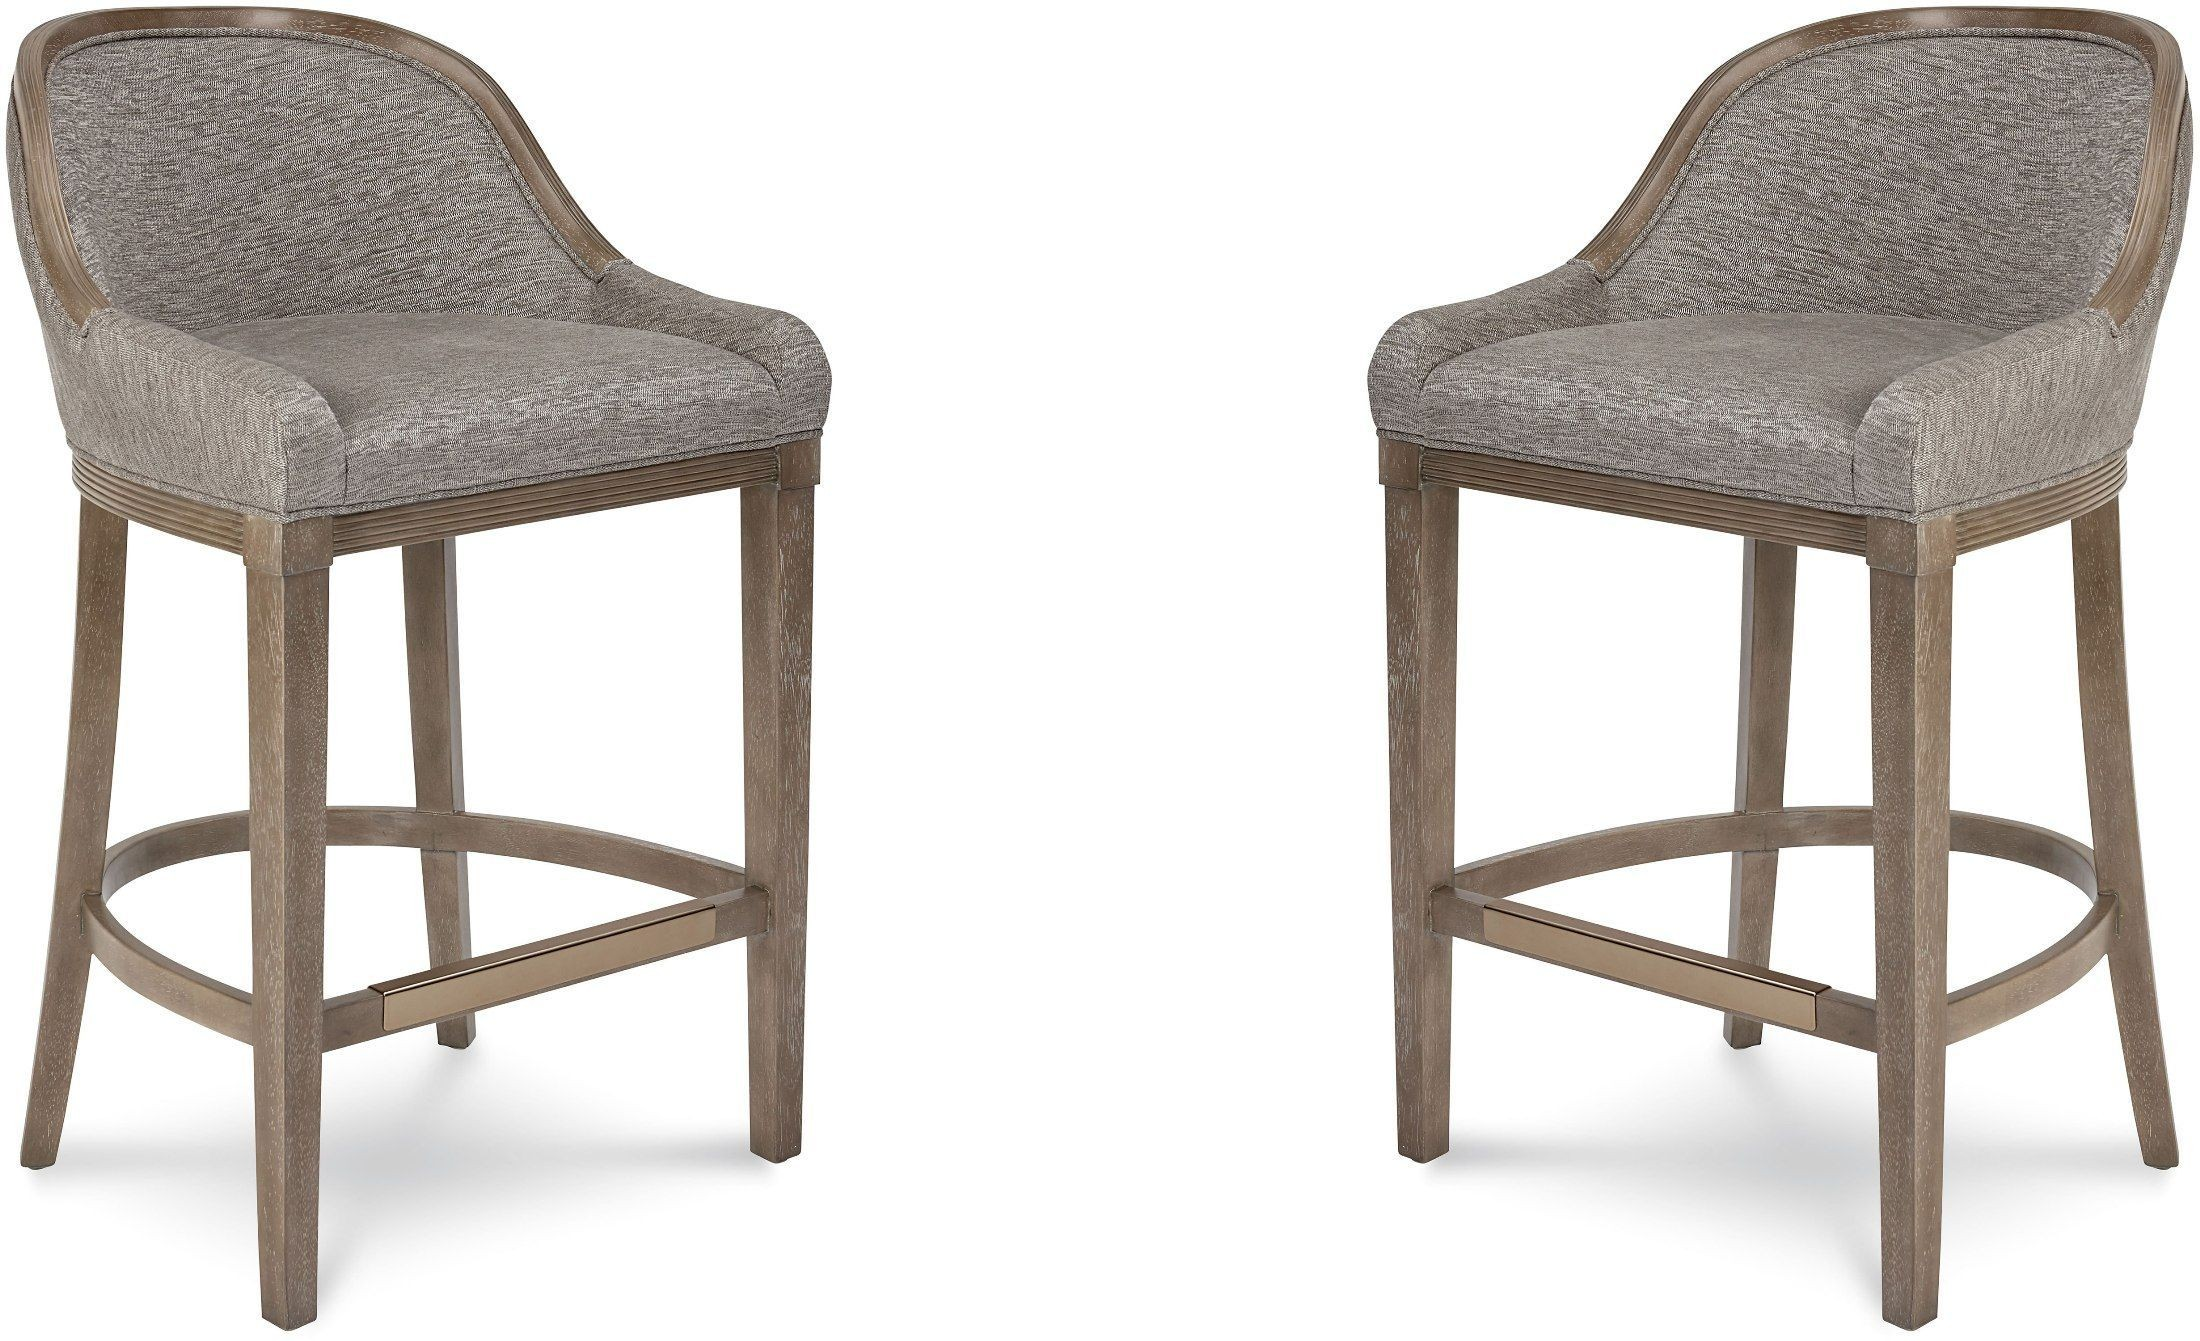 Cityscapes Stone Lincoln Bar Stool Set Of 2 From ART